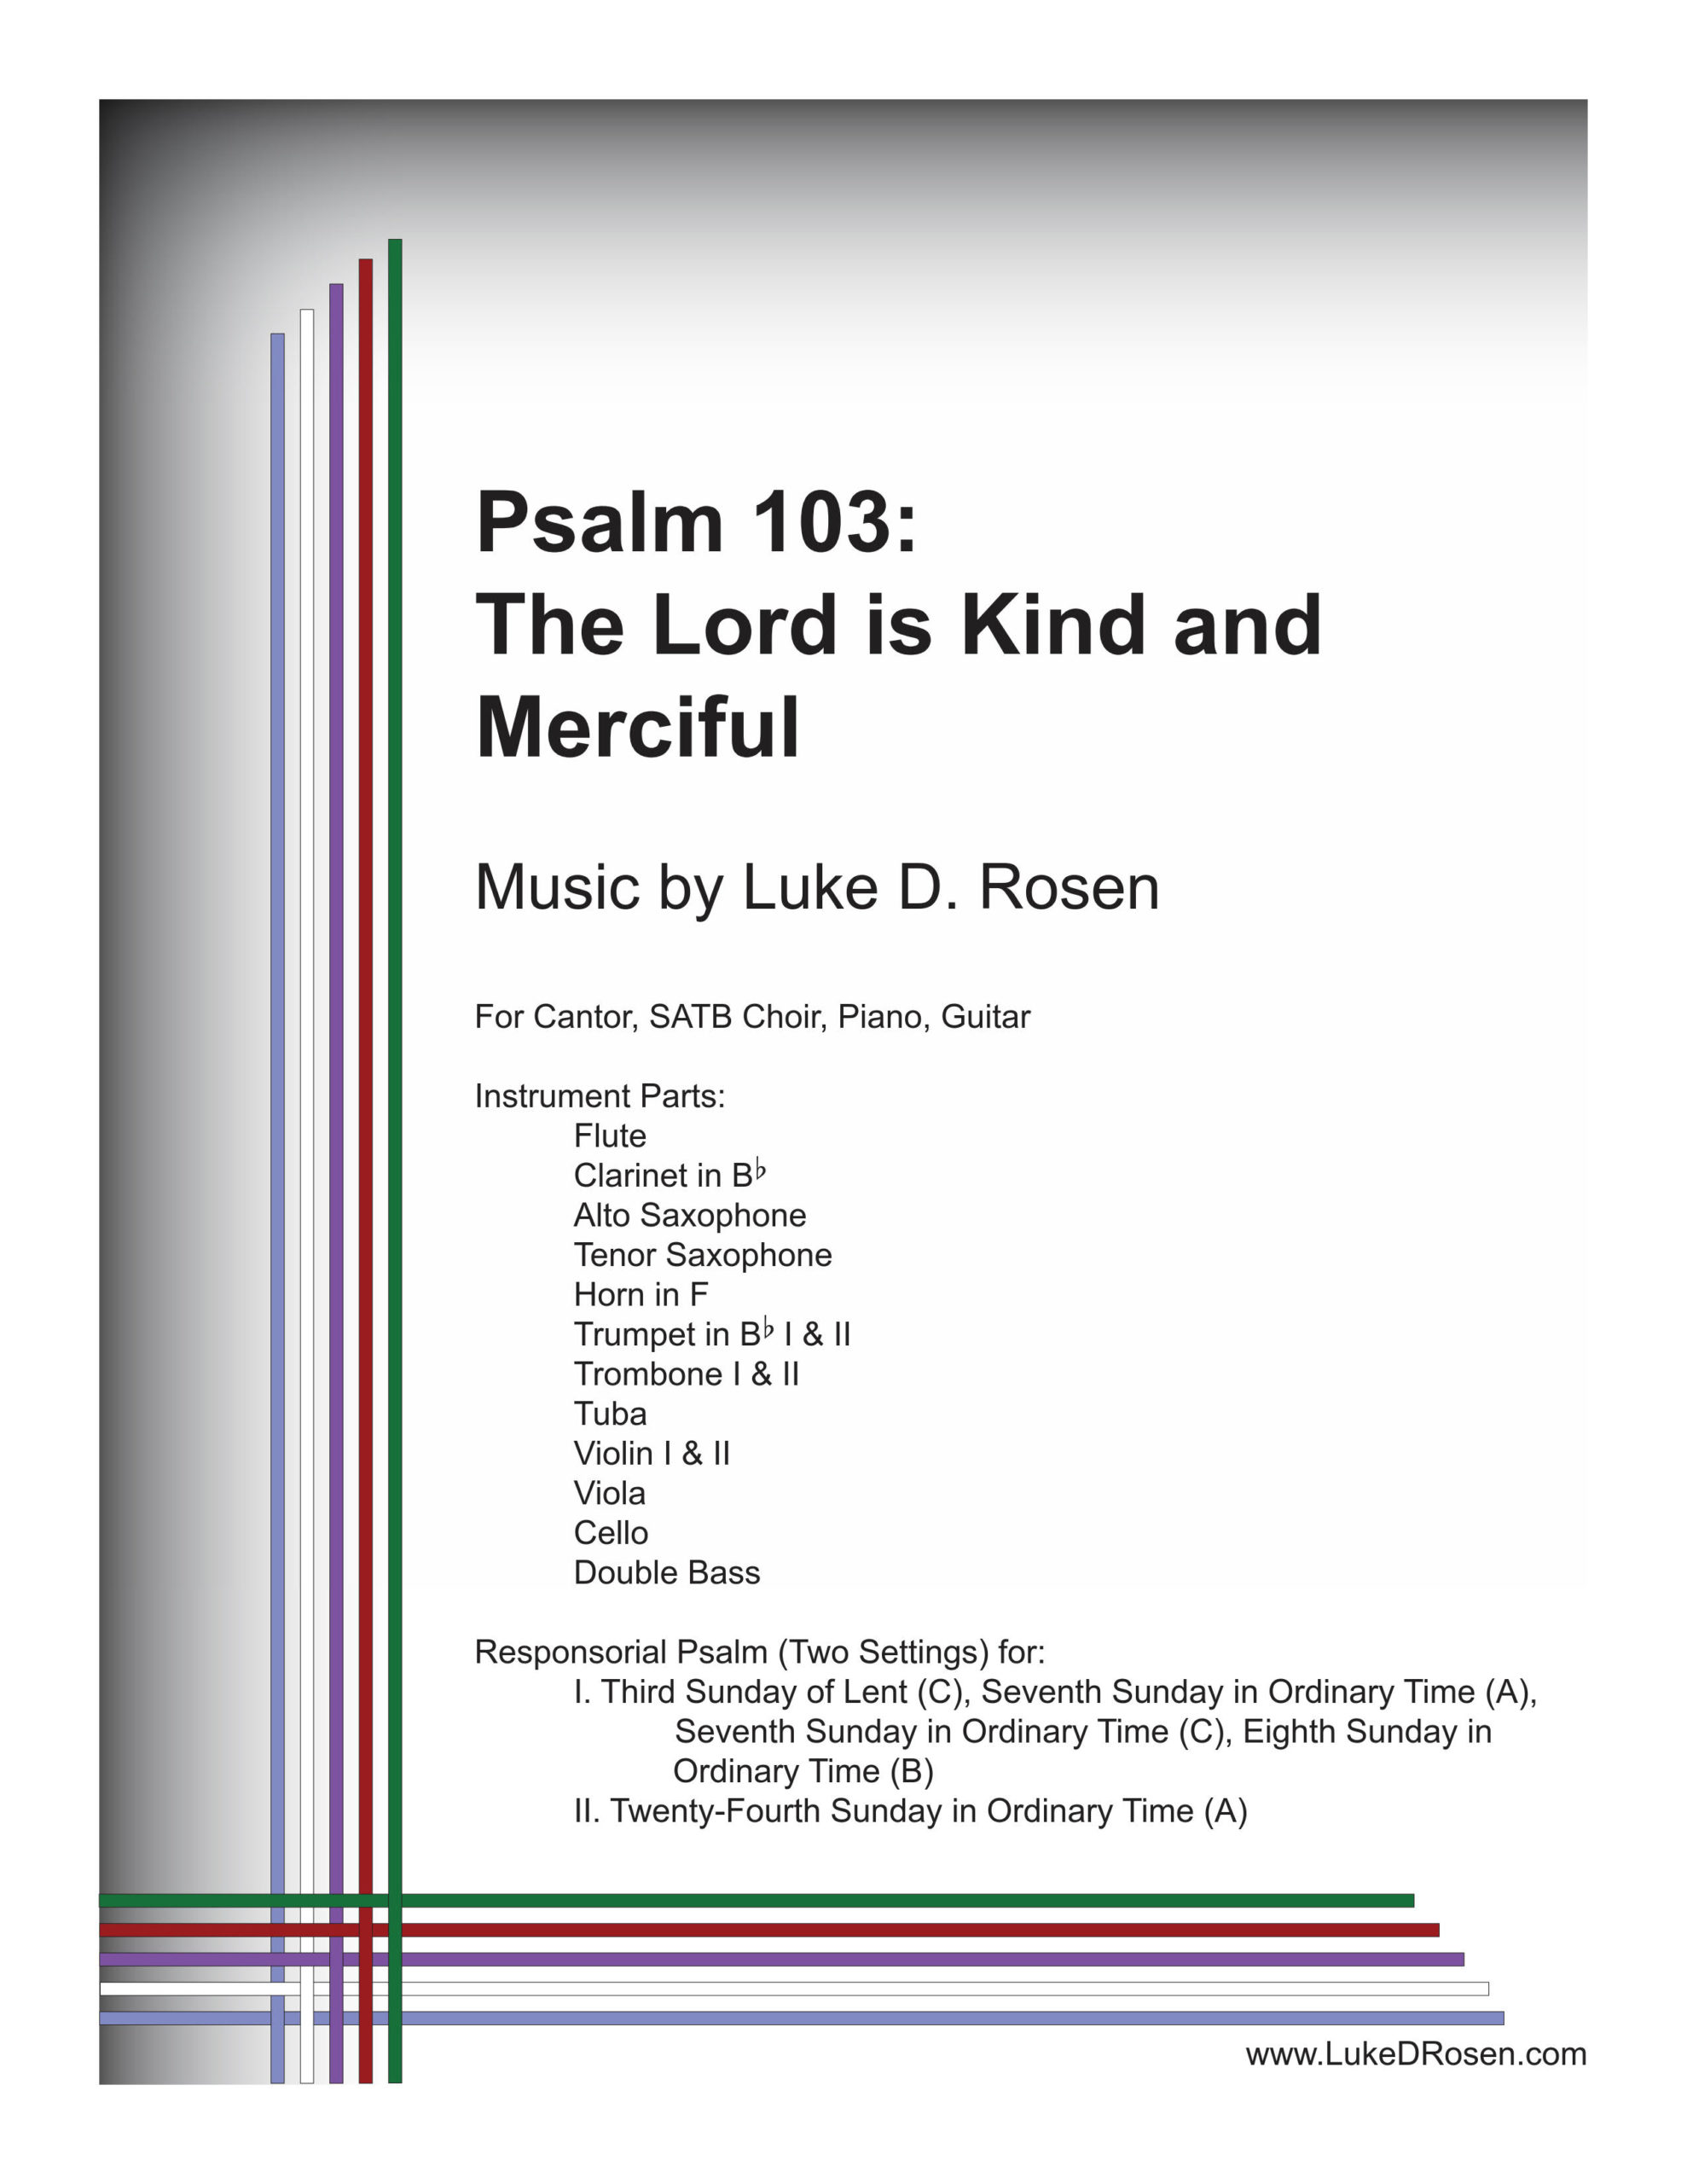 Psalm 103 The Lord is Kind and Merciful Rosen Sample Complete PDF 1 png